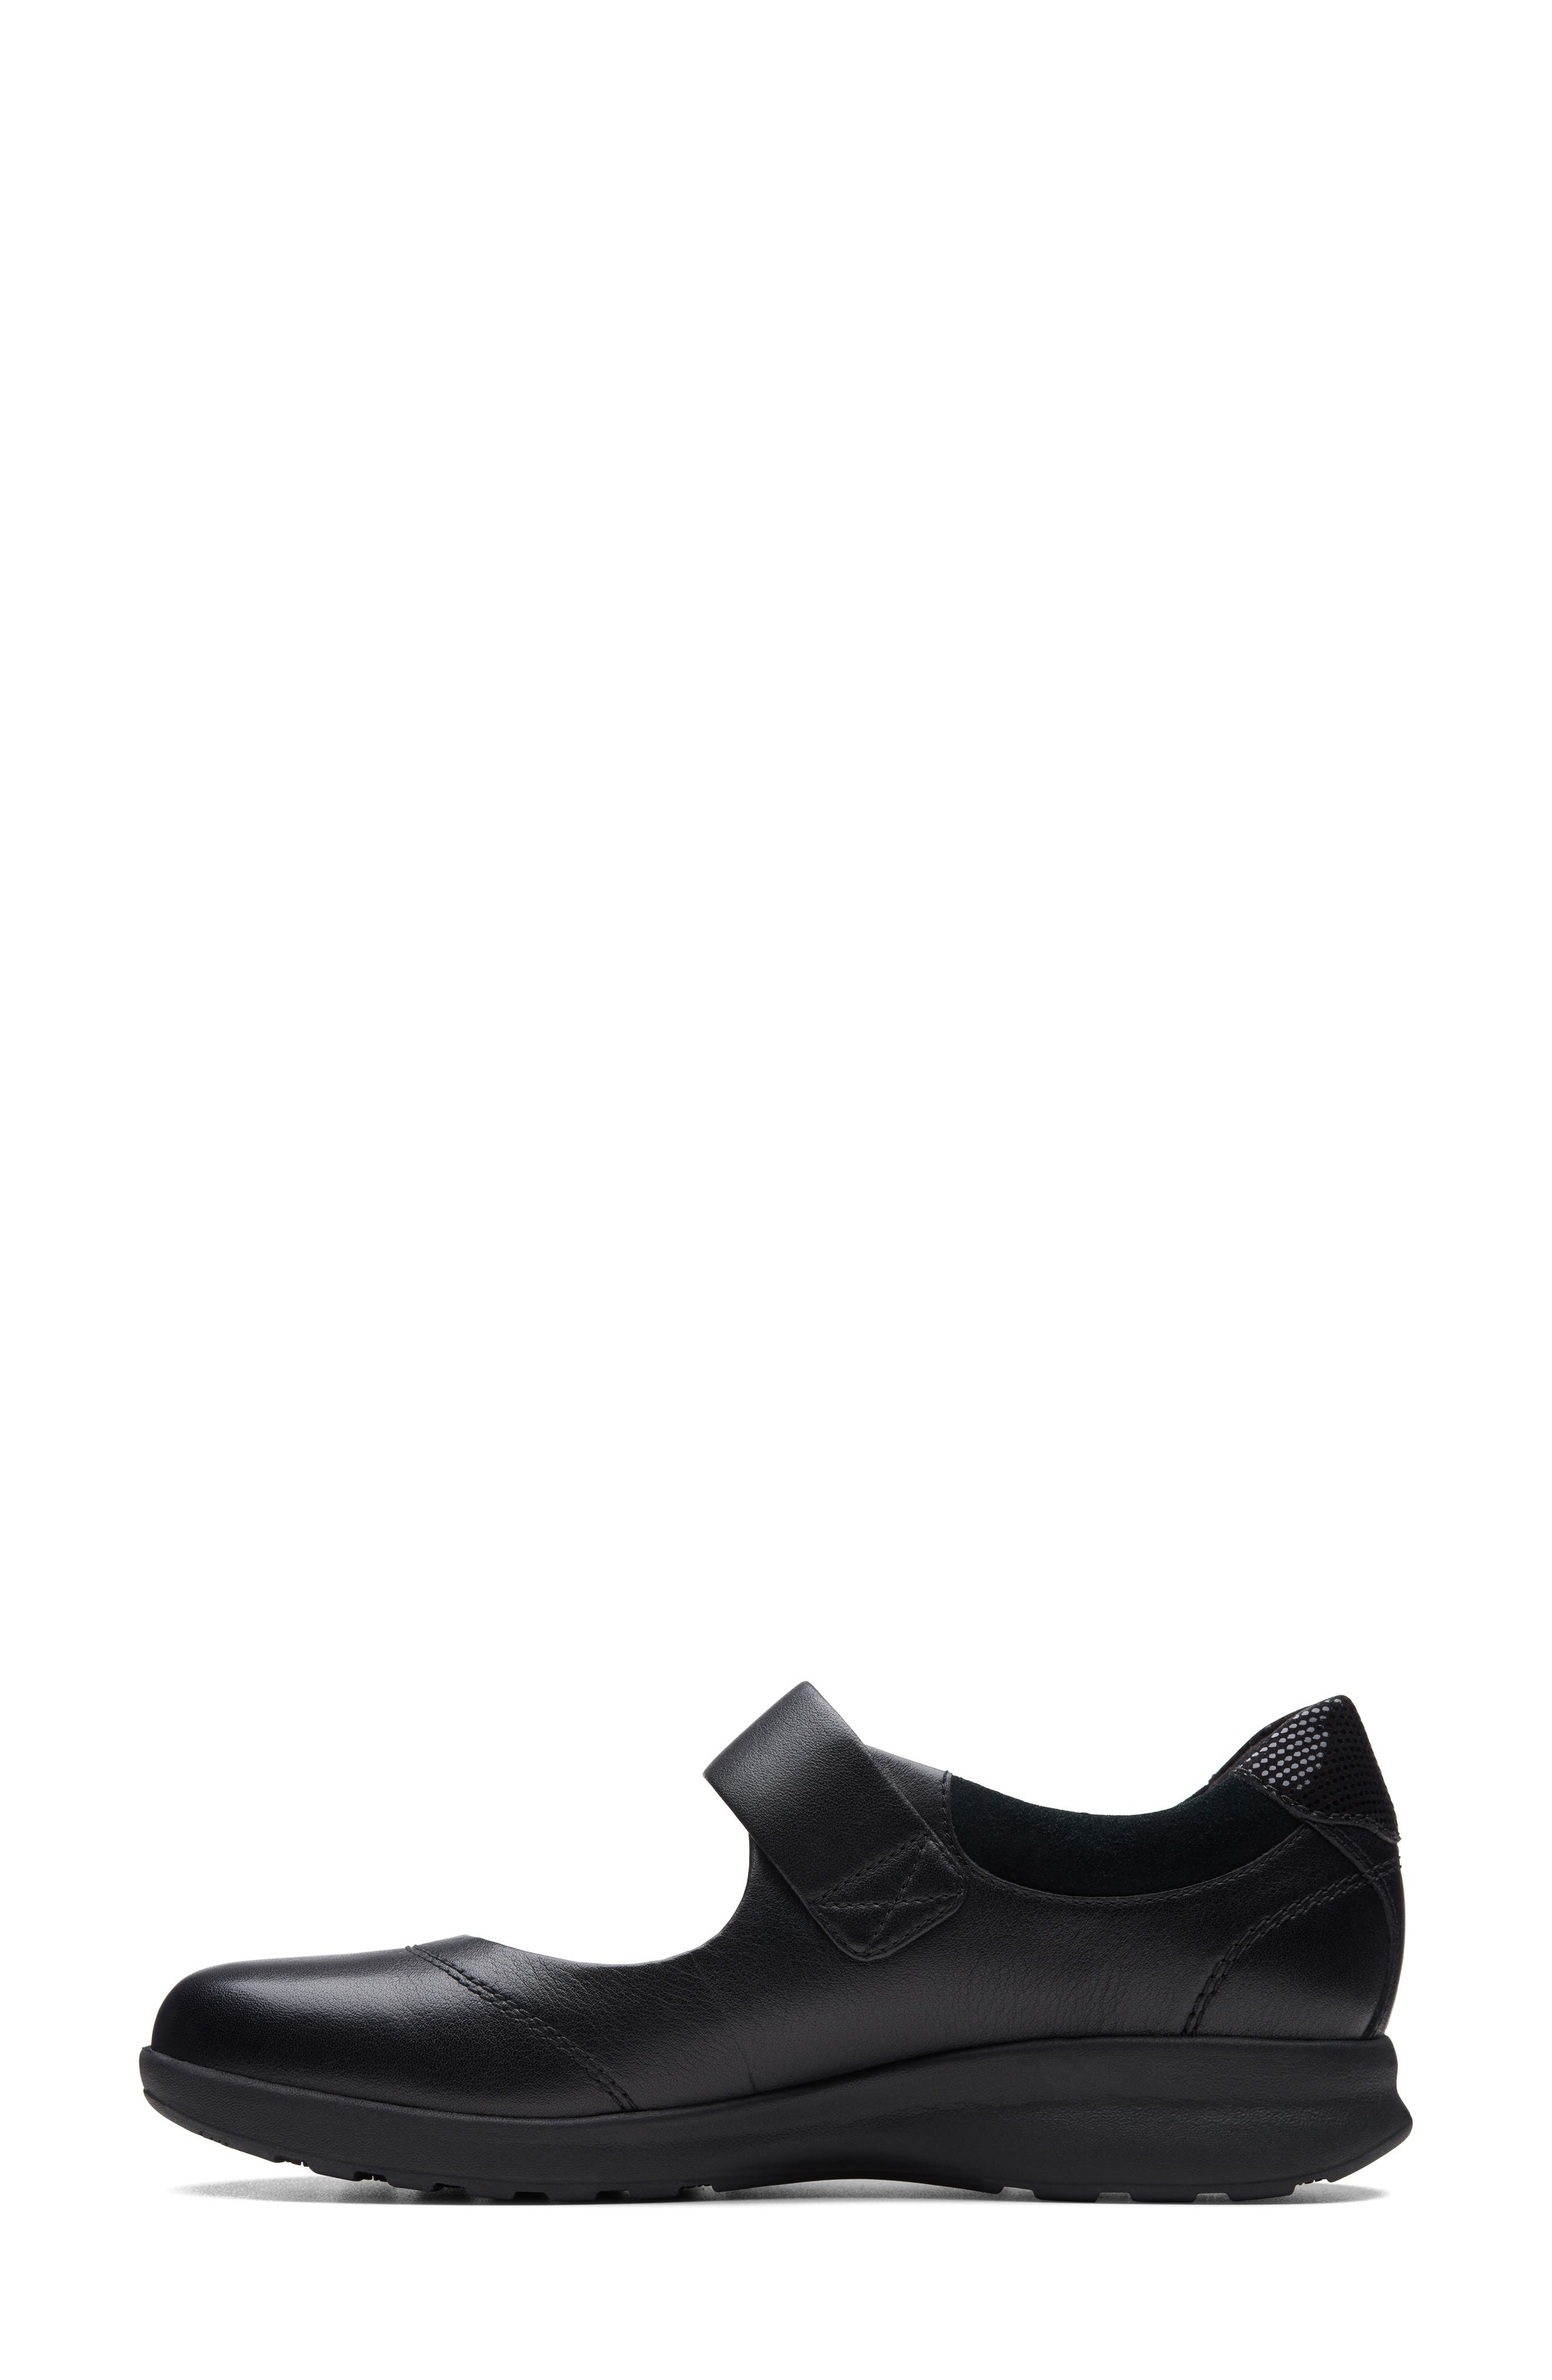 ,                             Un Adorn Mary Jane Flat,                             Alternate thumbnail 5, color,                             BLACK LEATHER/ SUEDE COMBI